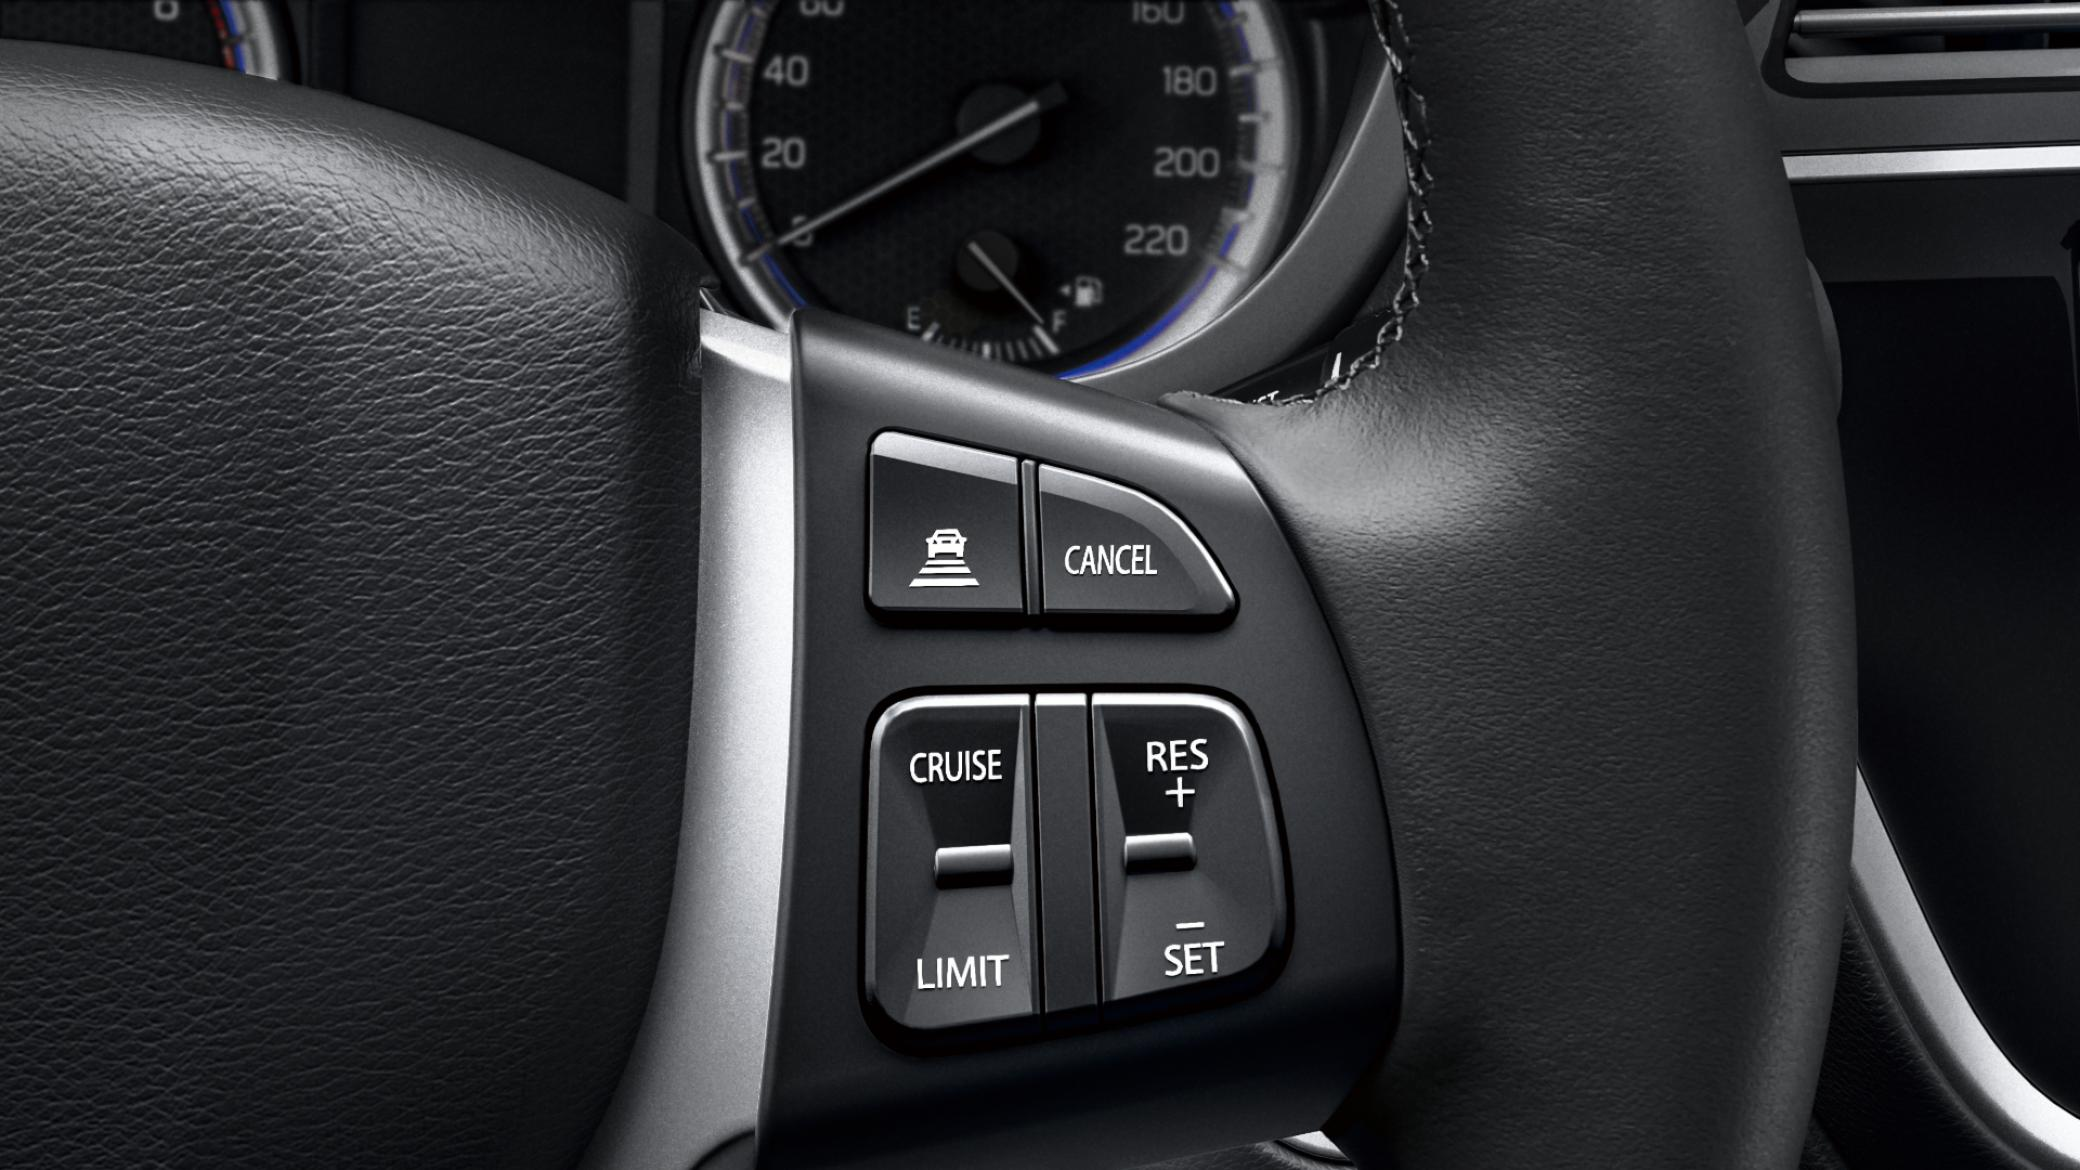 Adaptieve cruise control met speed limiter